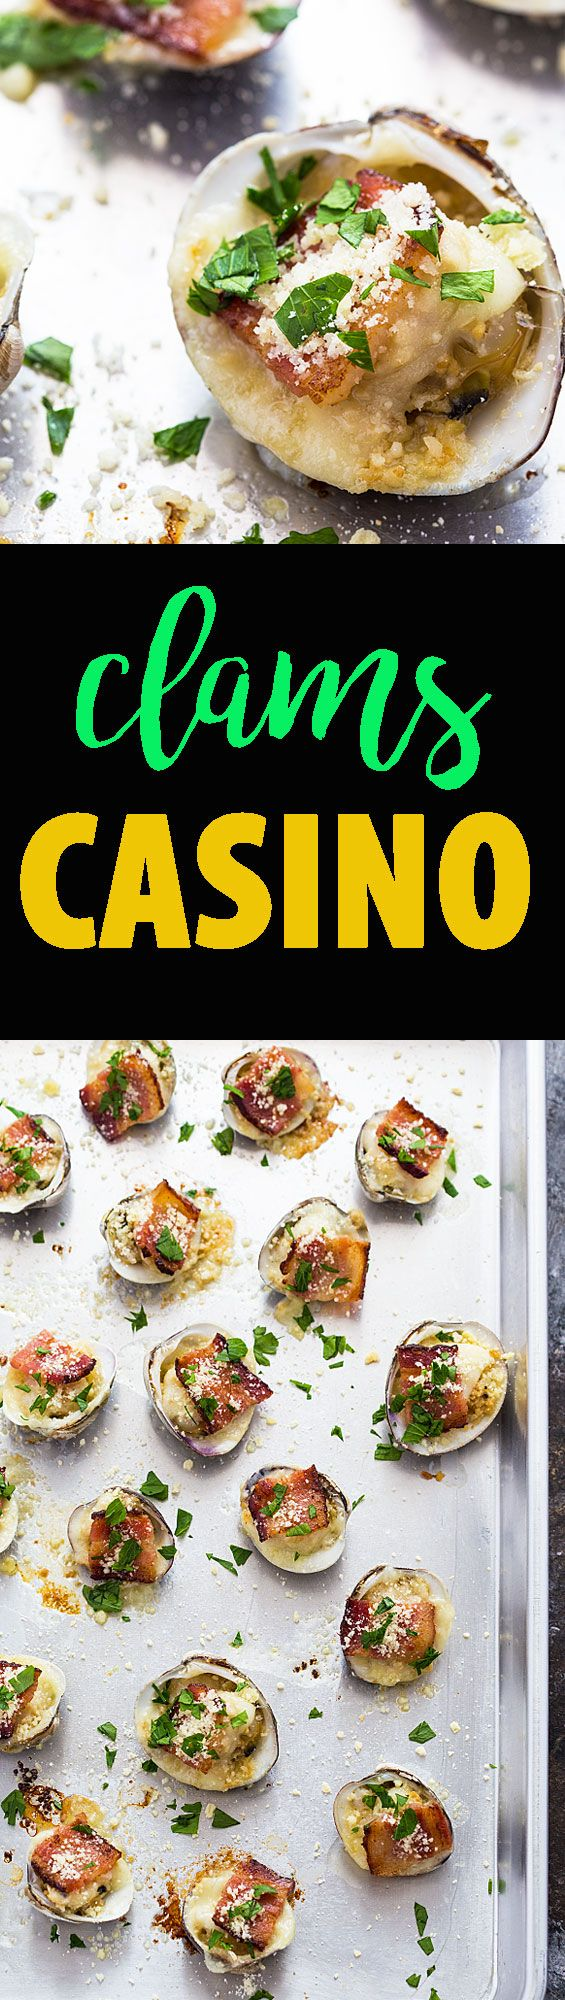 Clams Casino - Delicious baked clams with a buttery garlic sauce, cracker meal, cheese and bacon.